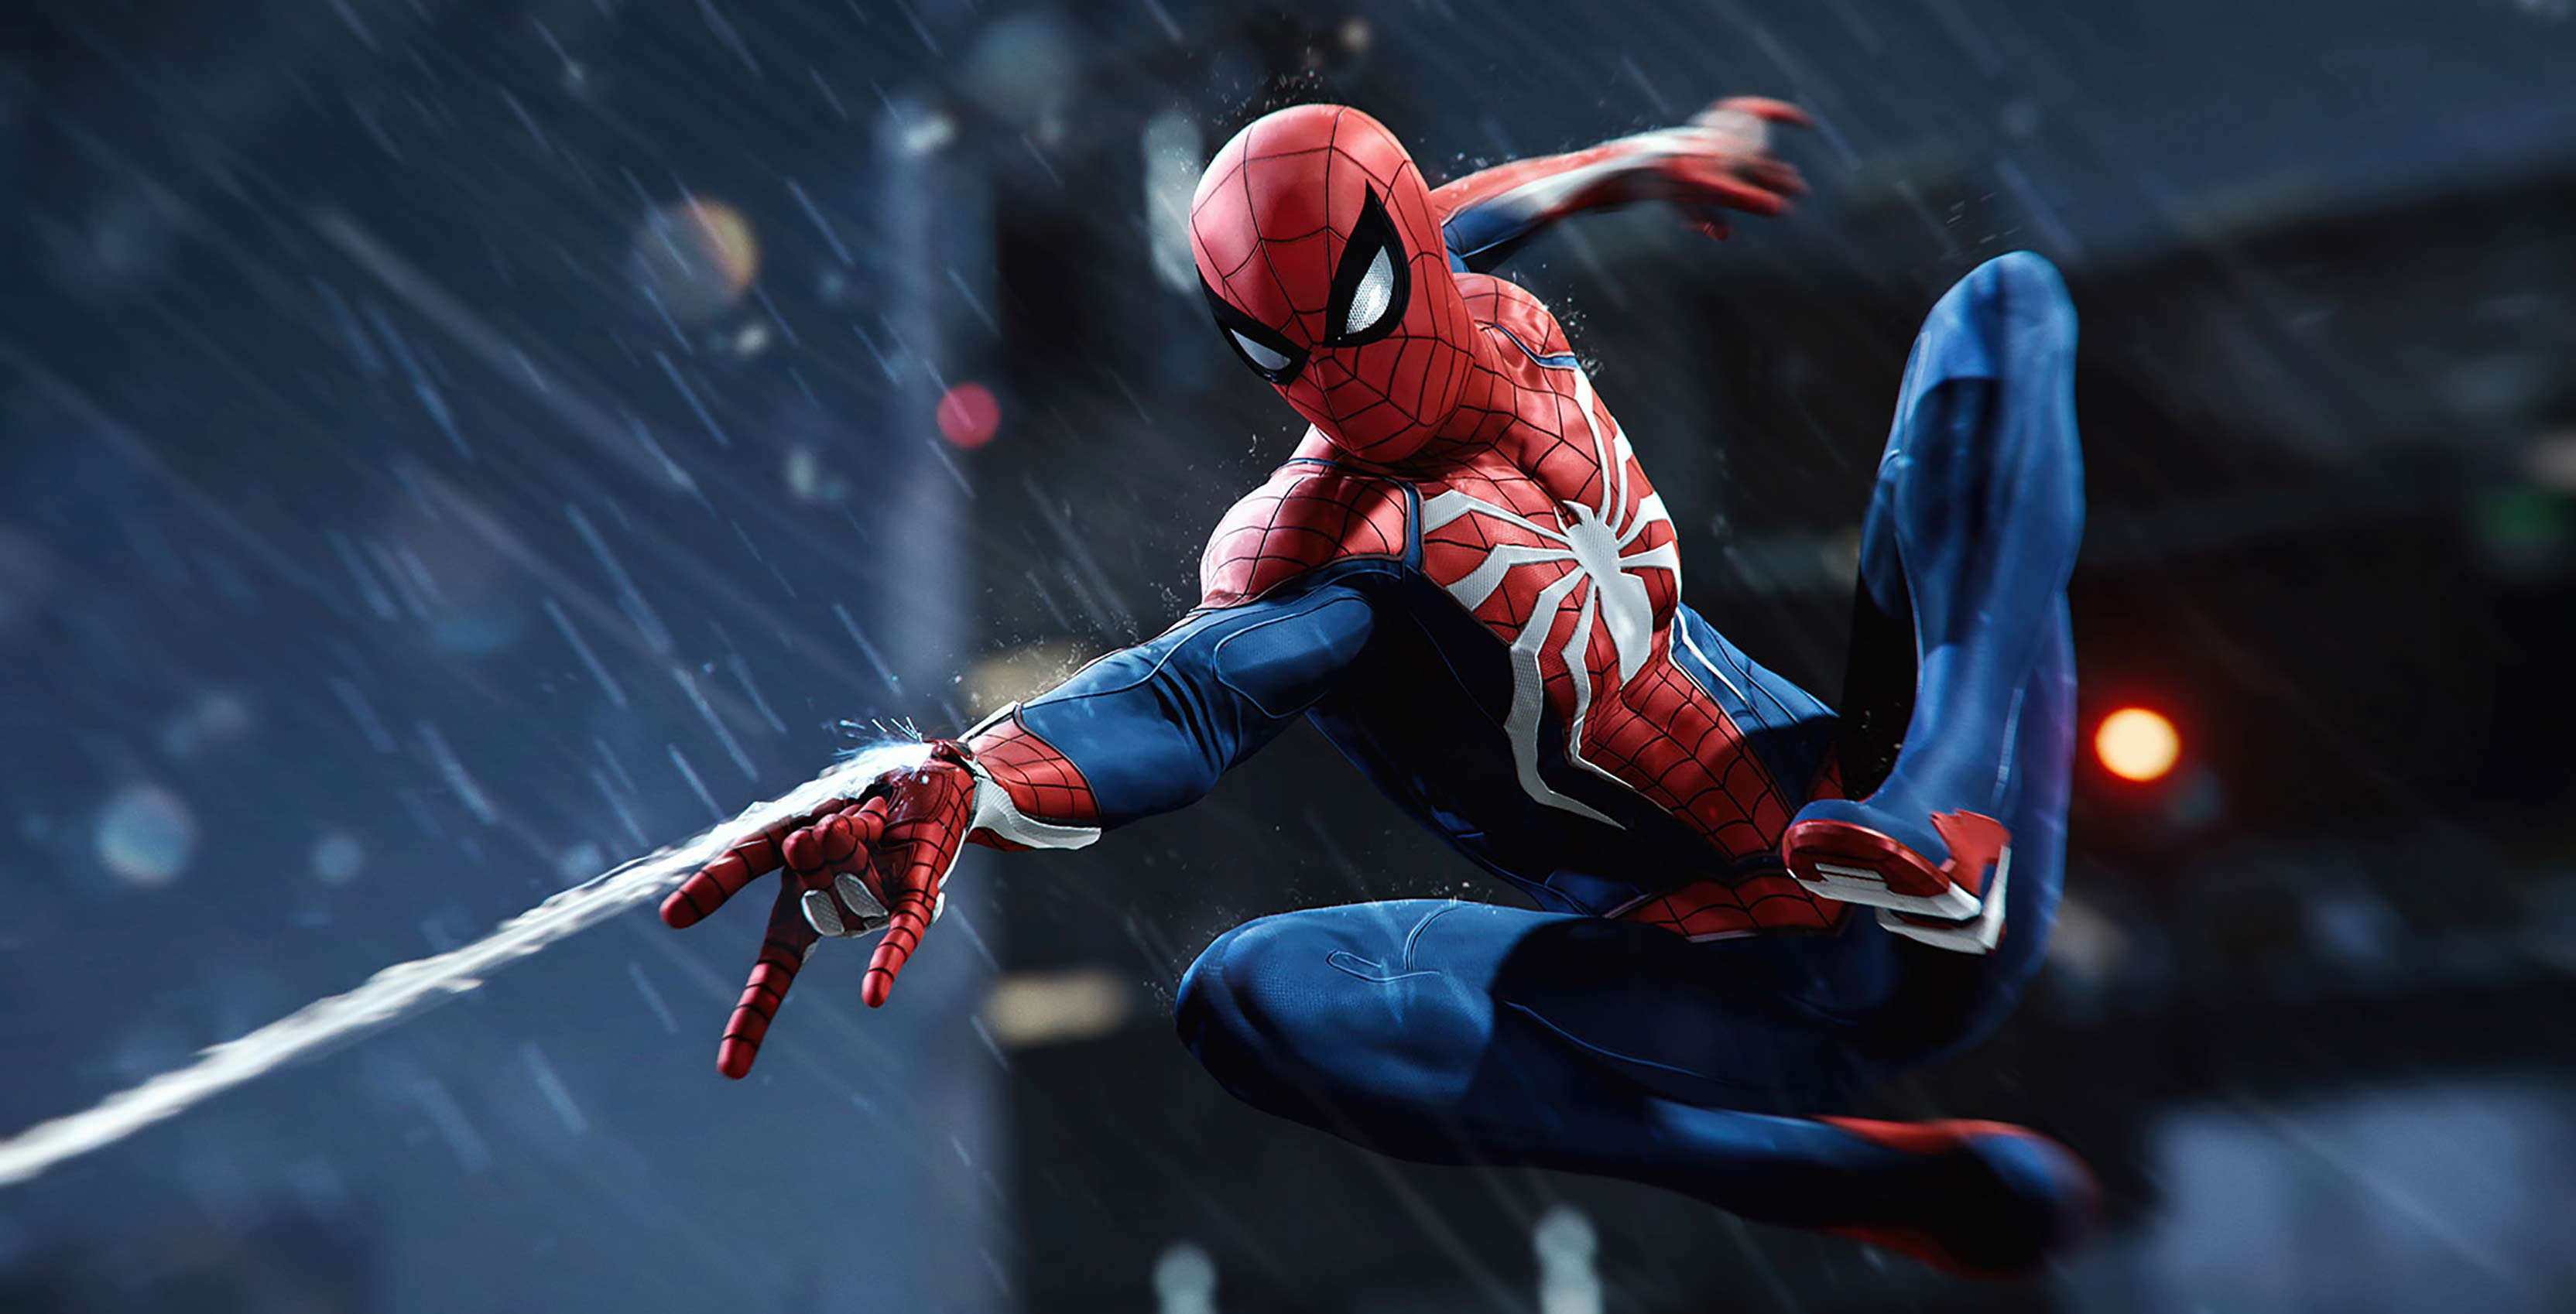 PS4 Black Friday 2018 sales include a cheap Spider-Man bundle